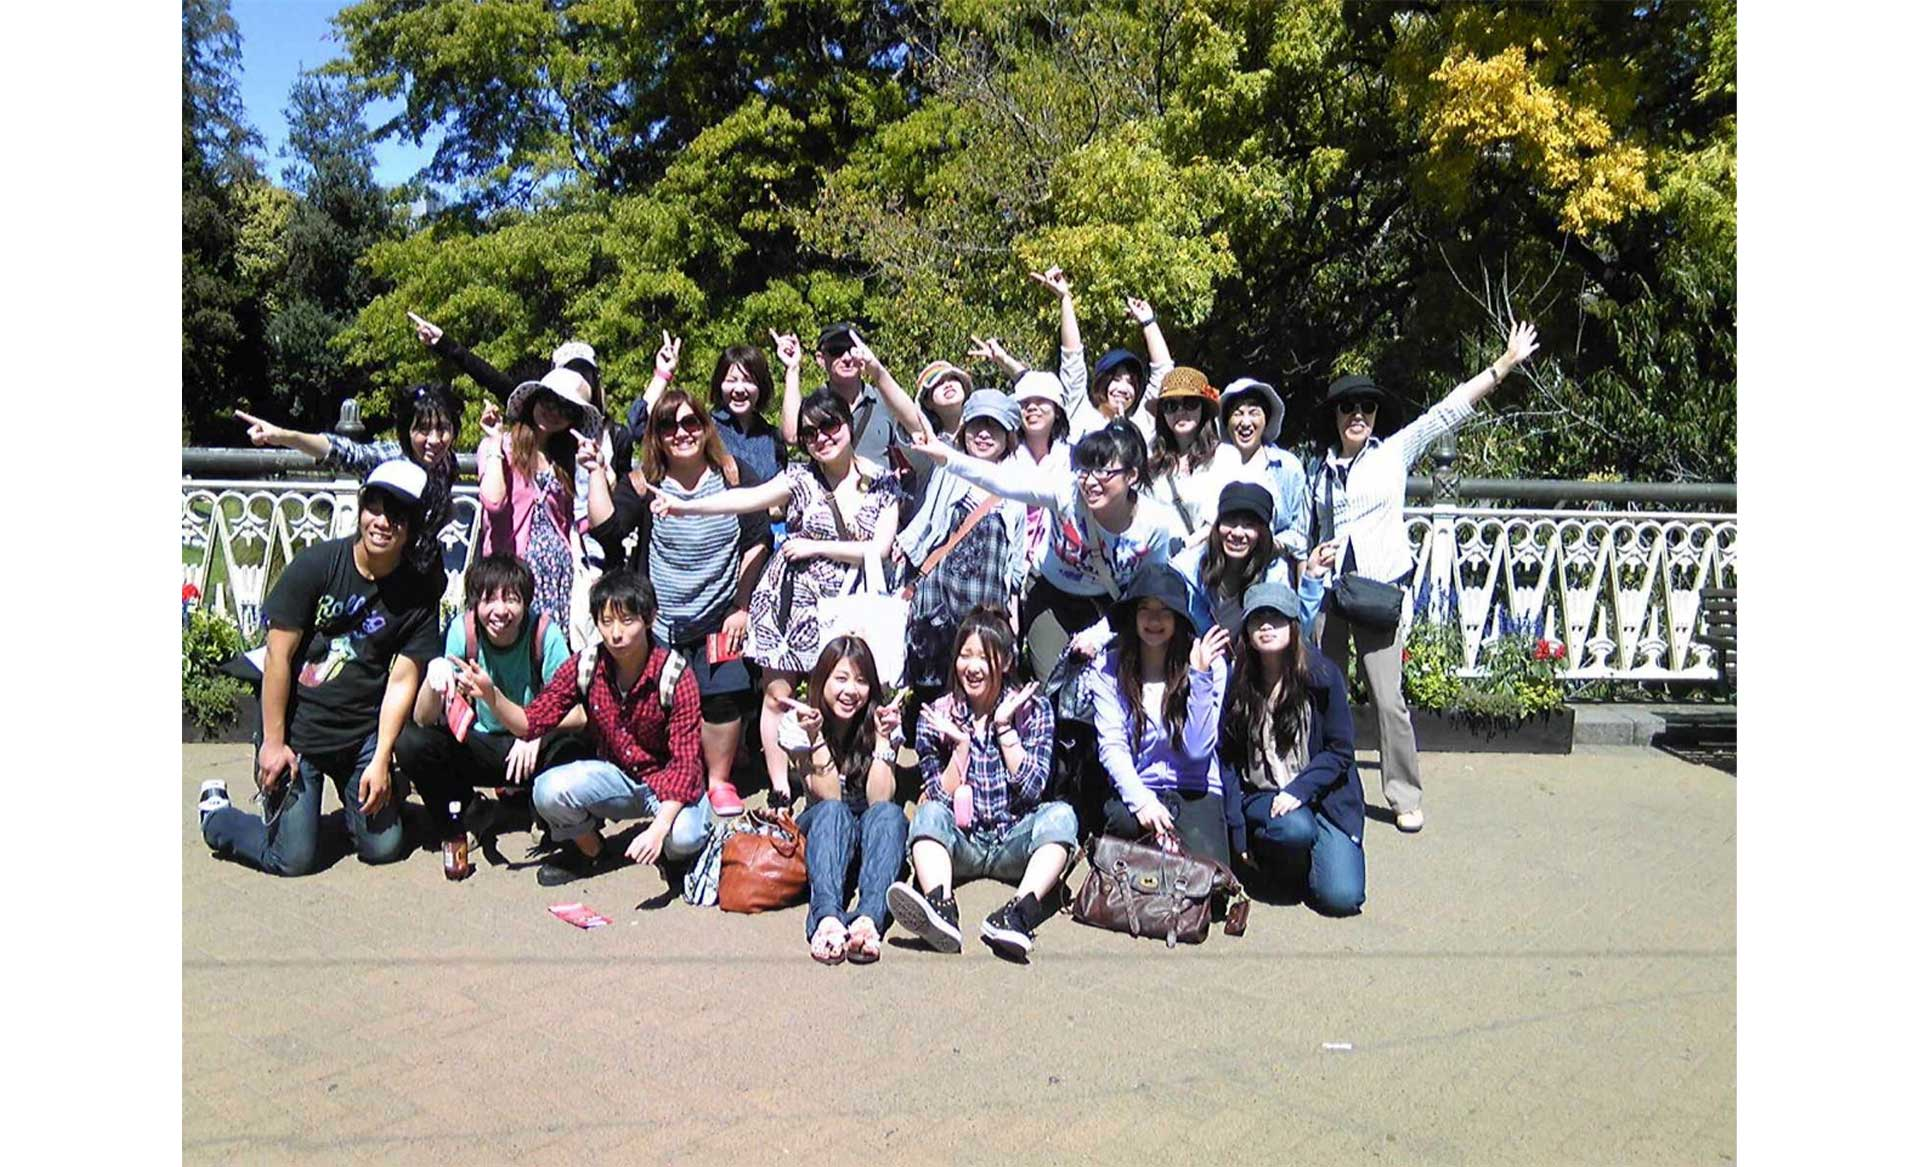 king education school japanes students photo